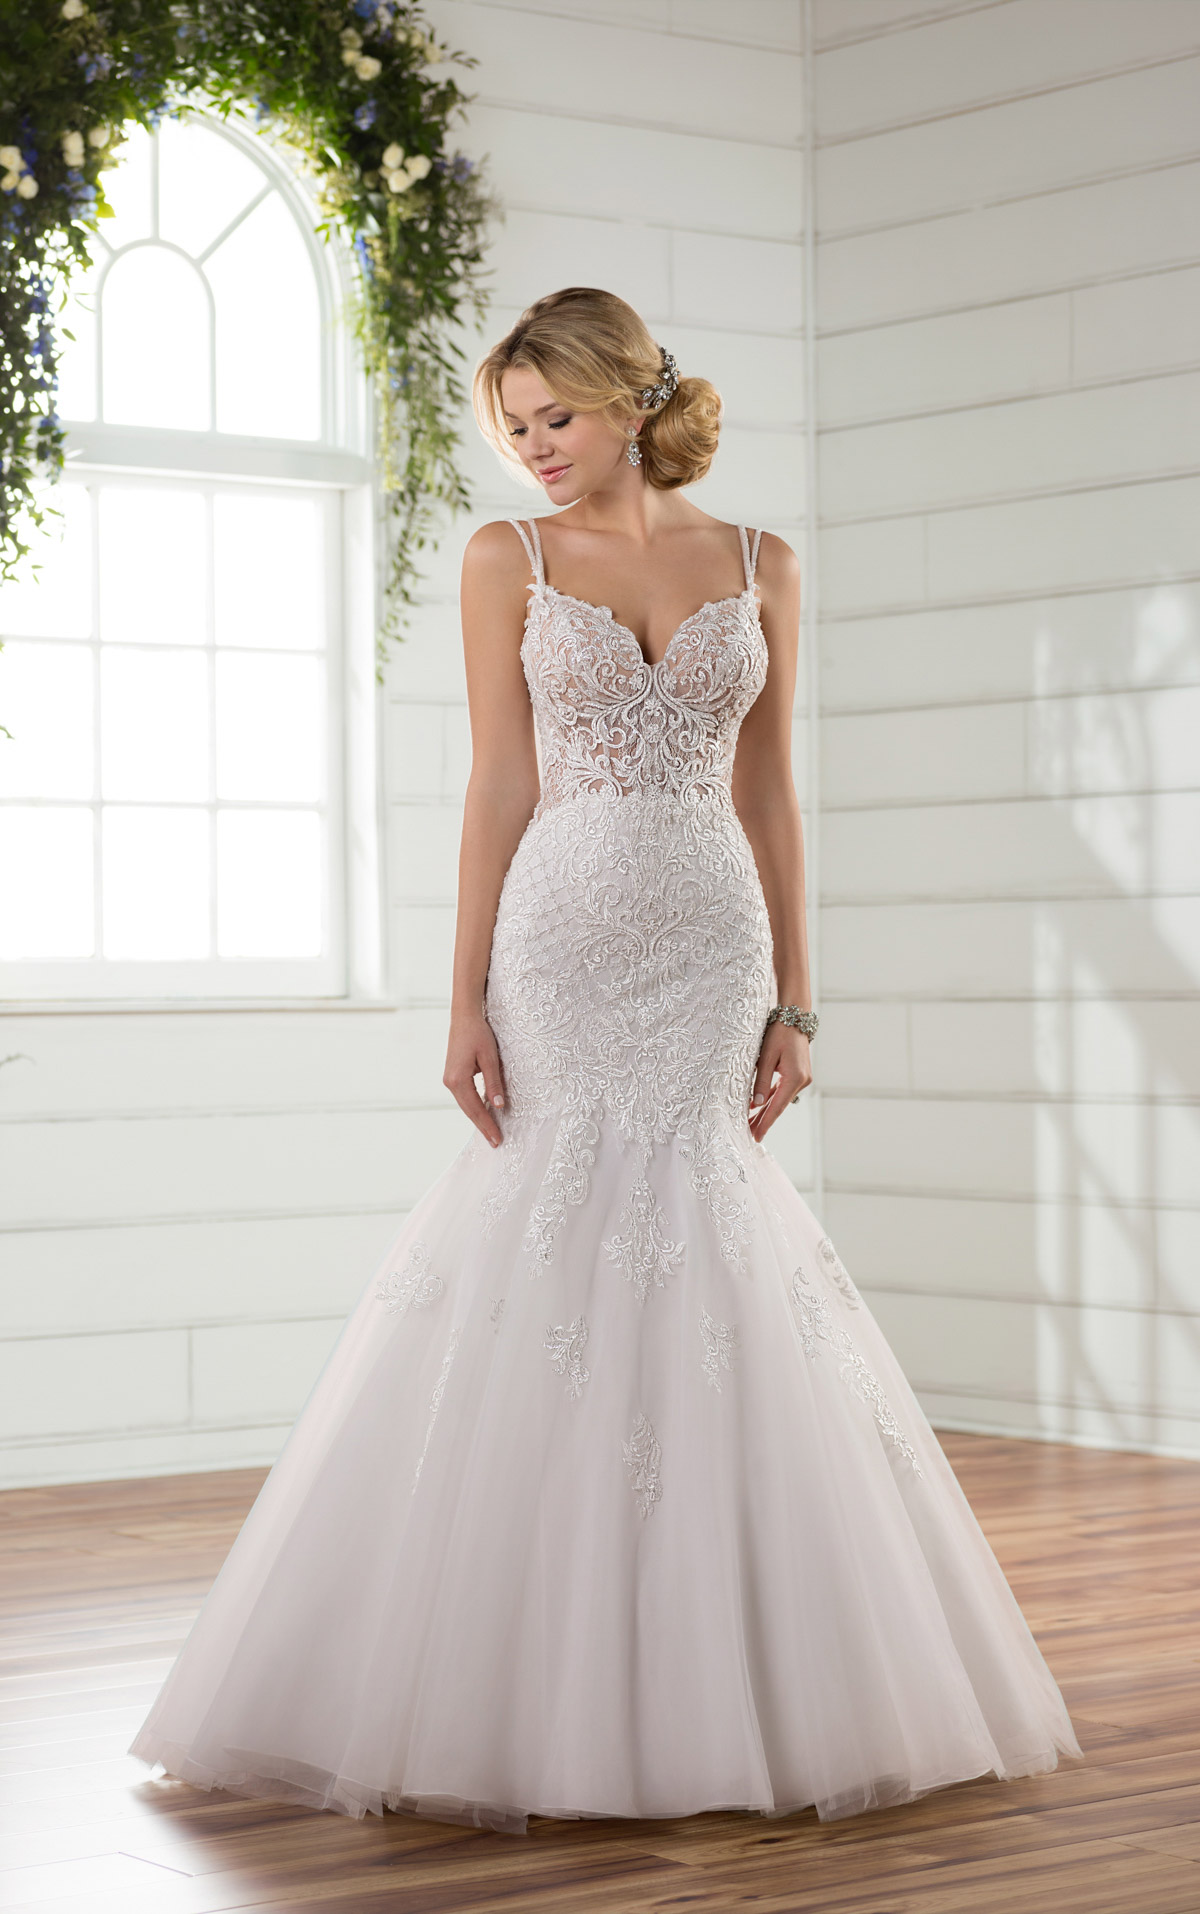 essence of australia wedding dresses photo - 1